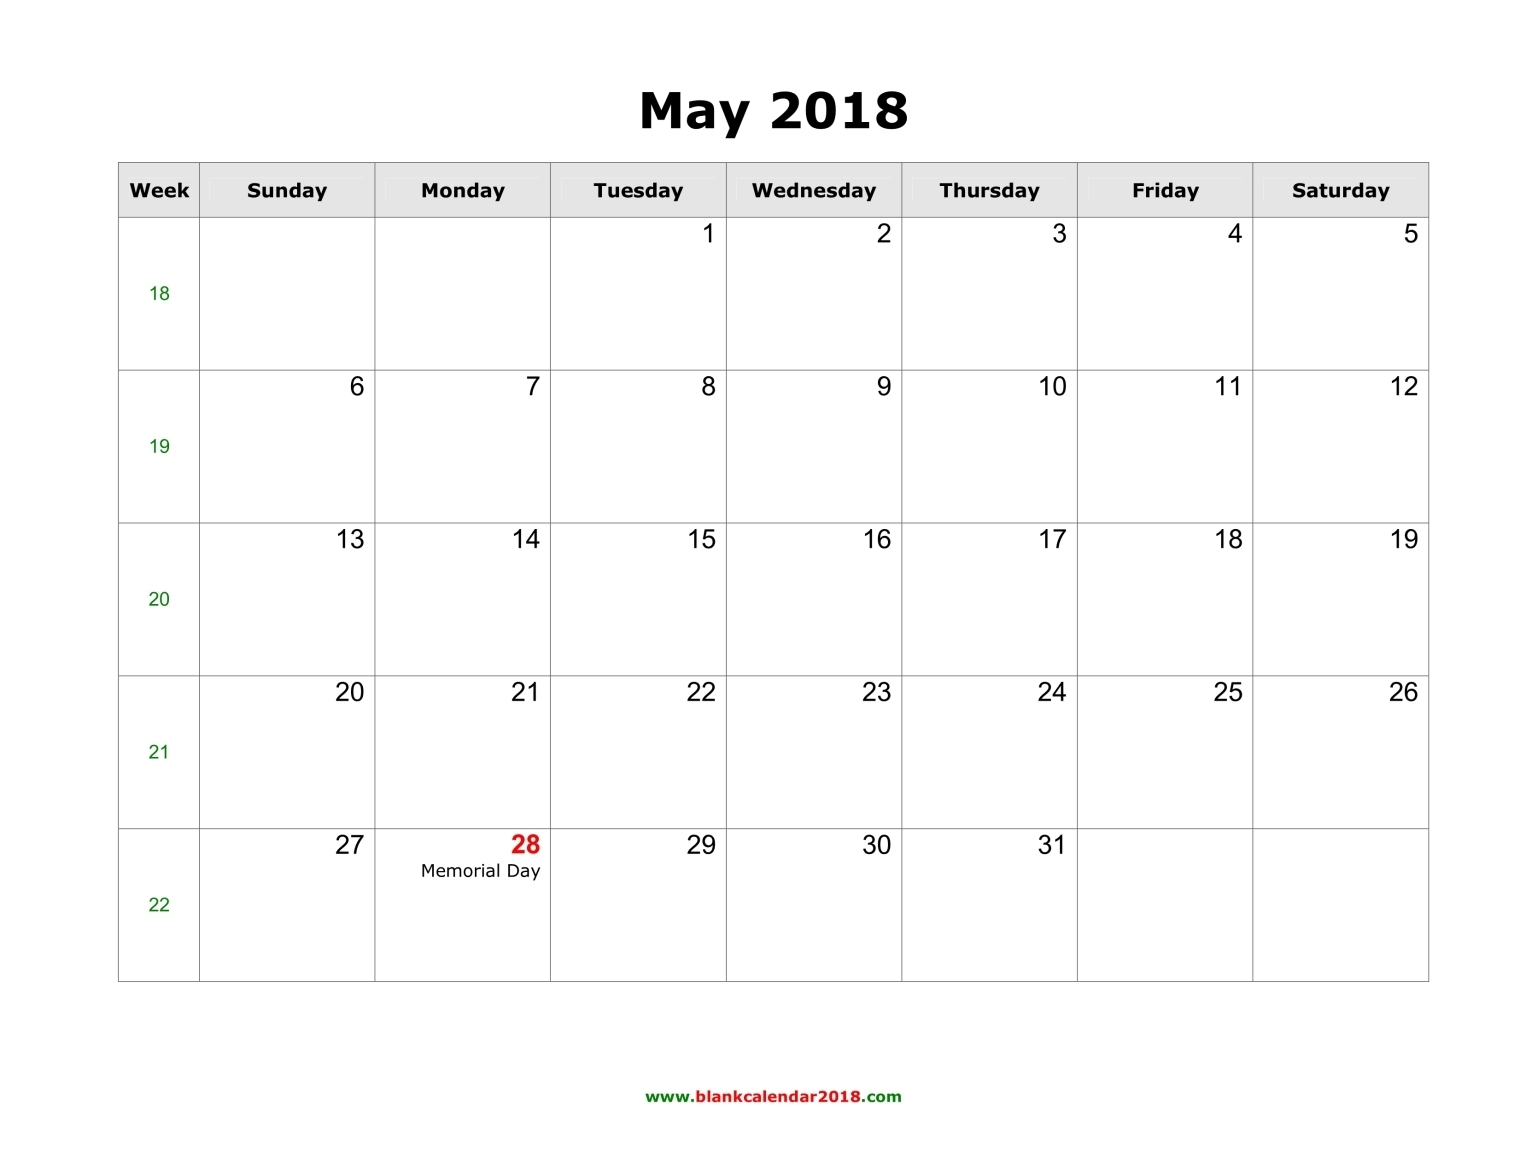 May 2018 Calendar Indian Holidays